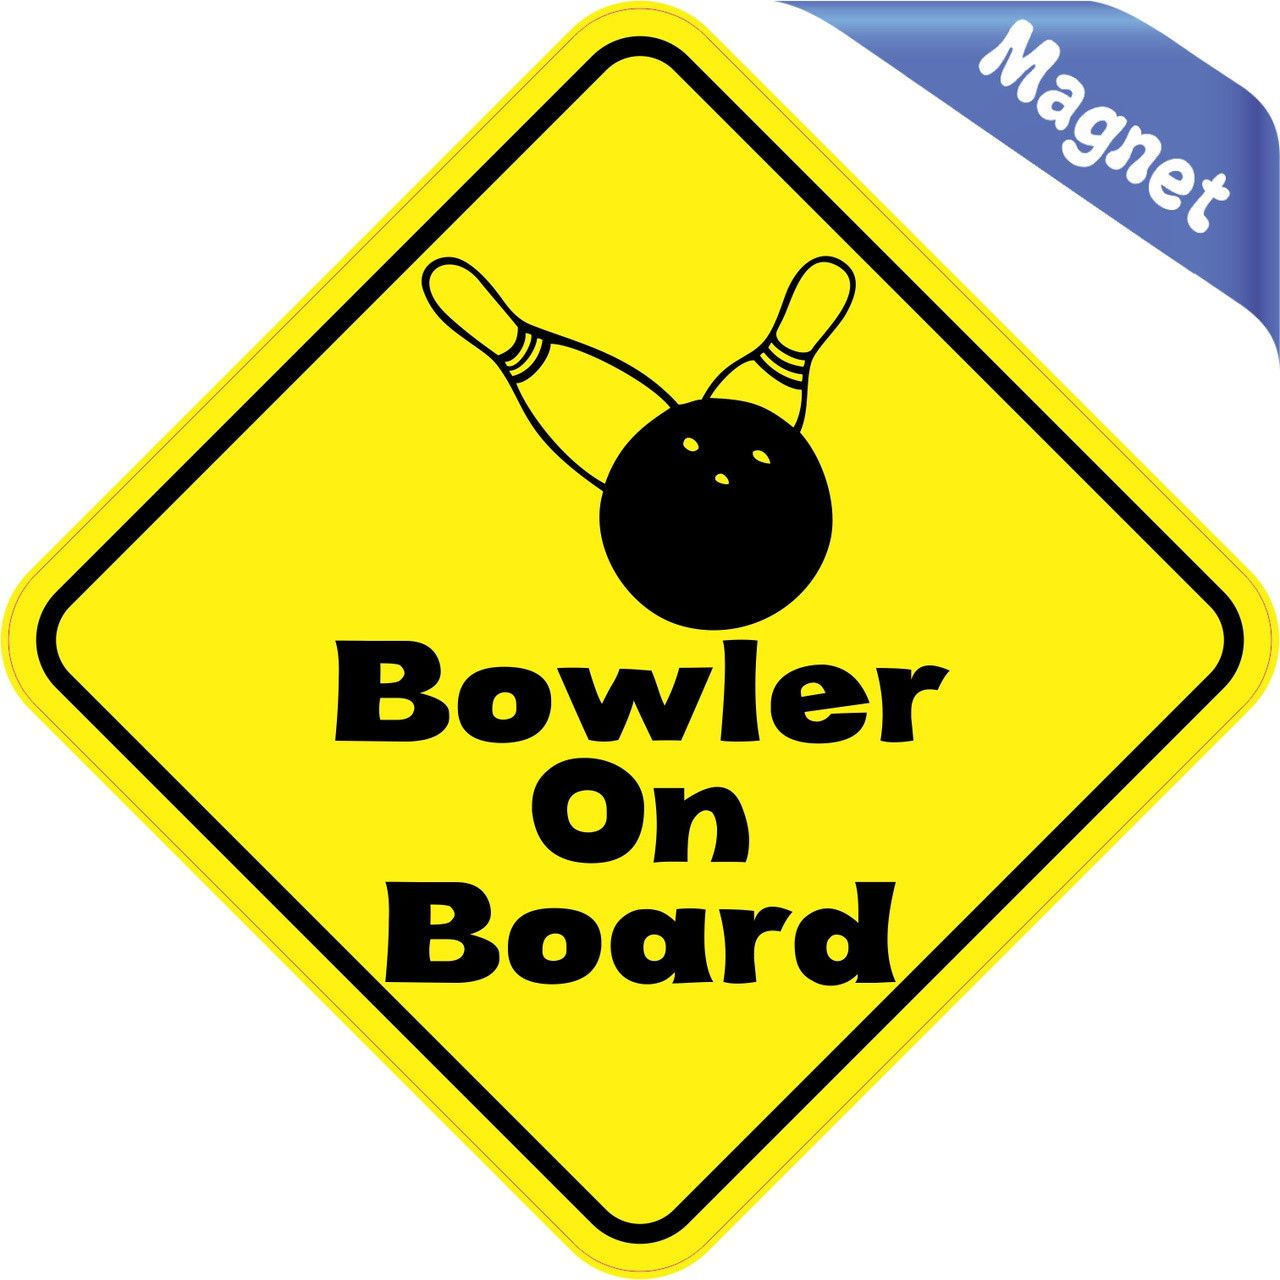 4 5 x4 5 bowler on board bumper magnet decal vinyl magnetic magnets car decals